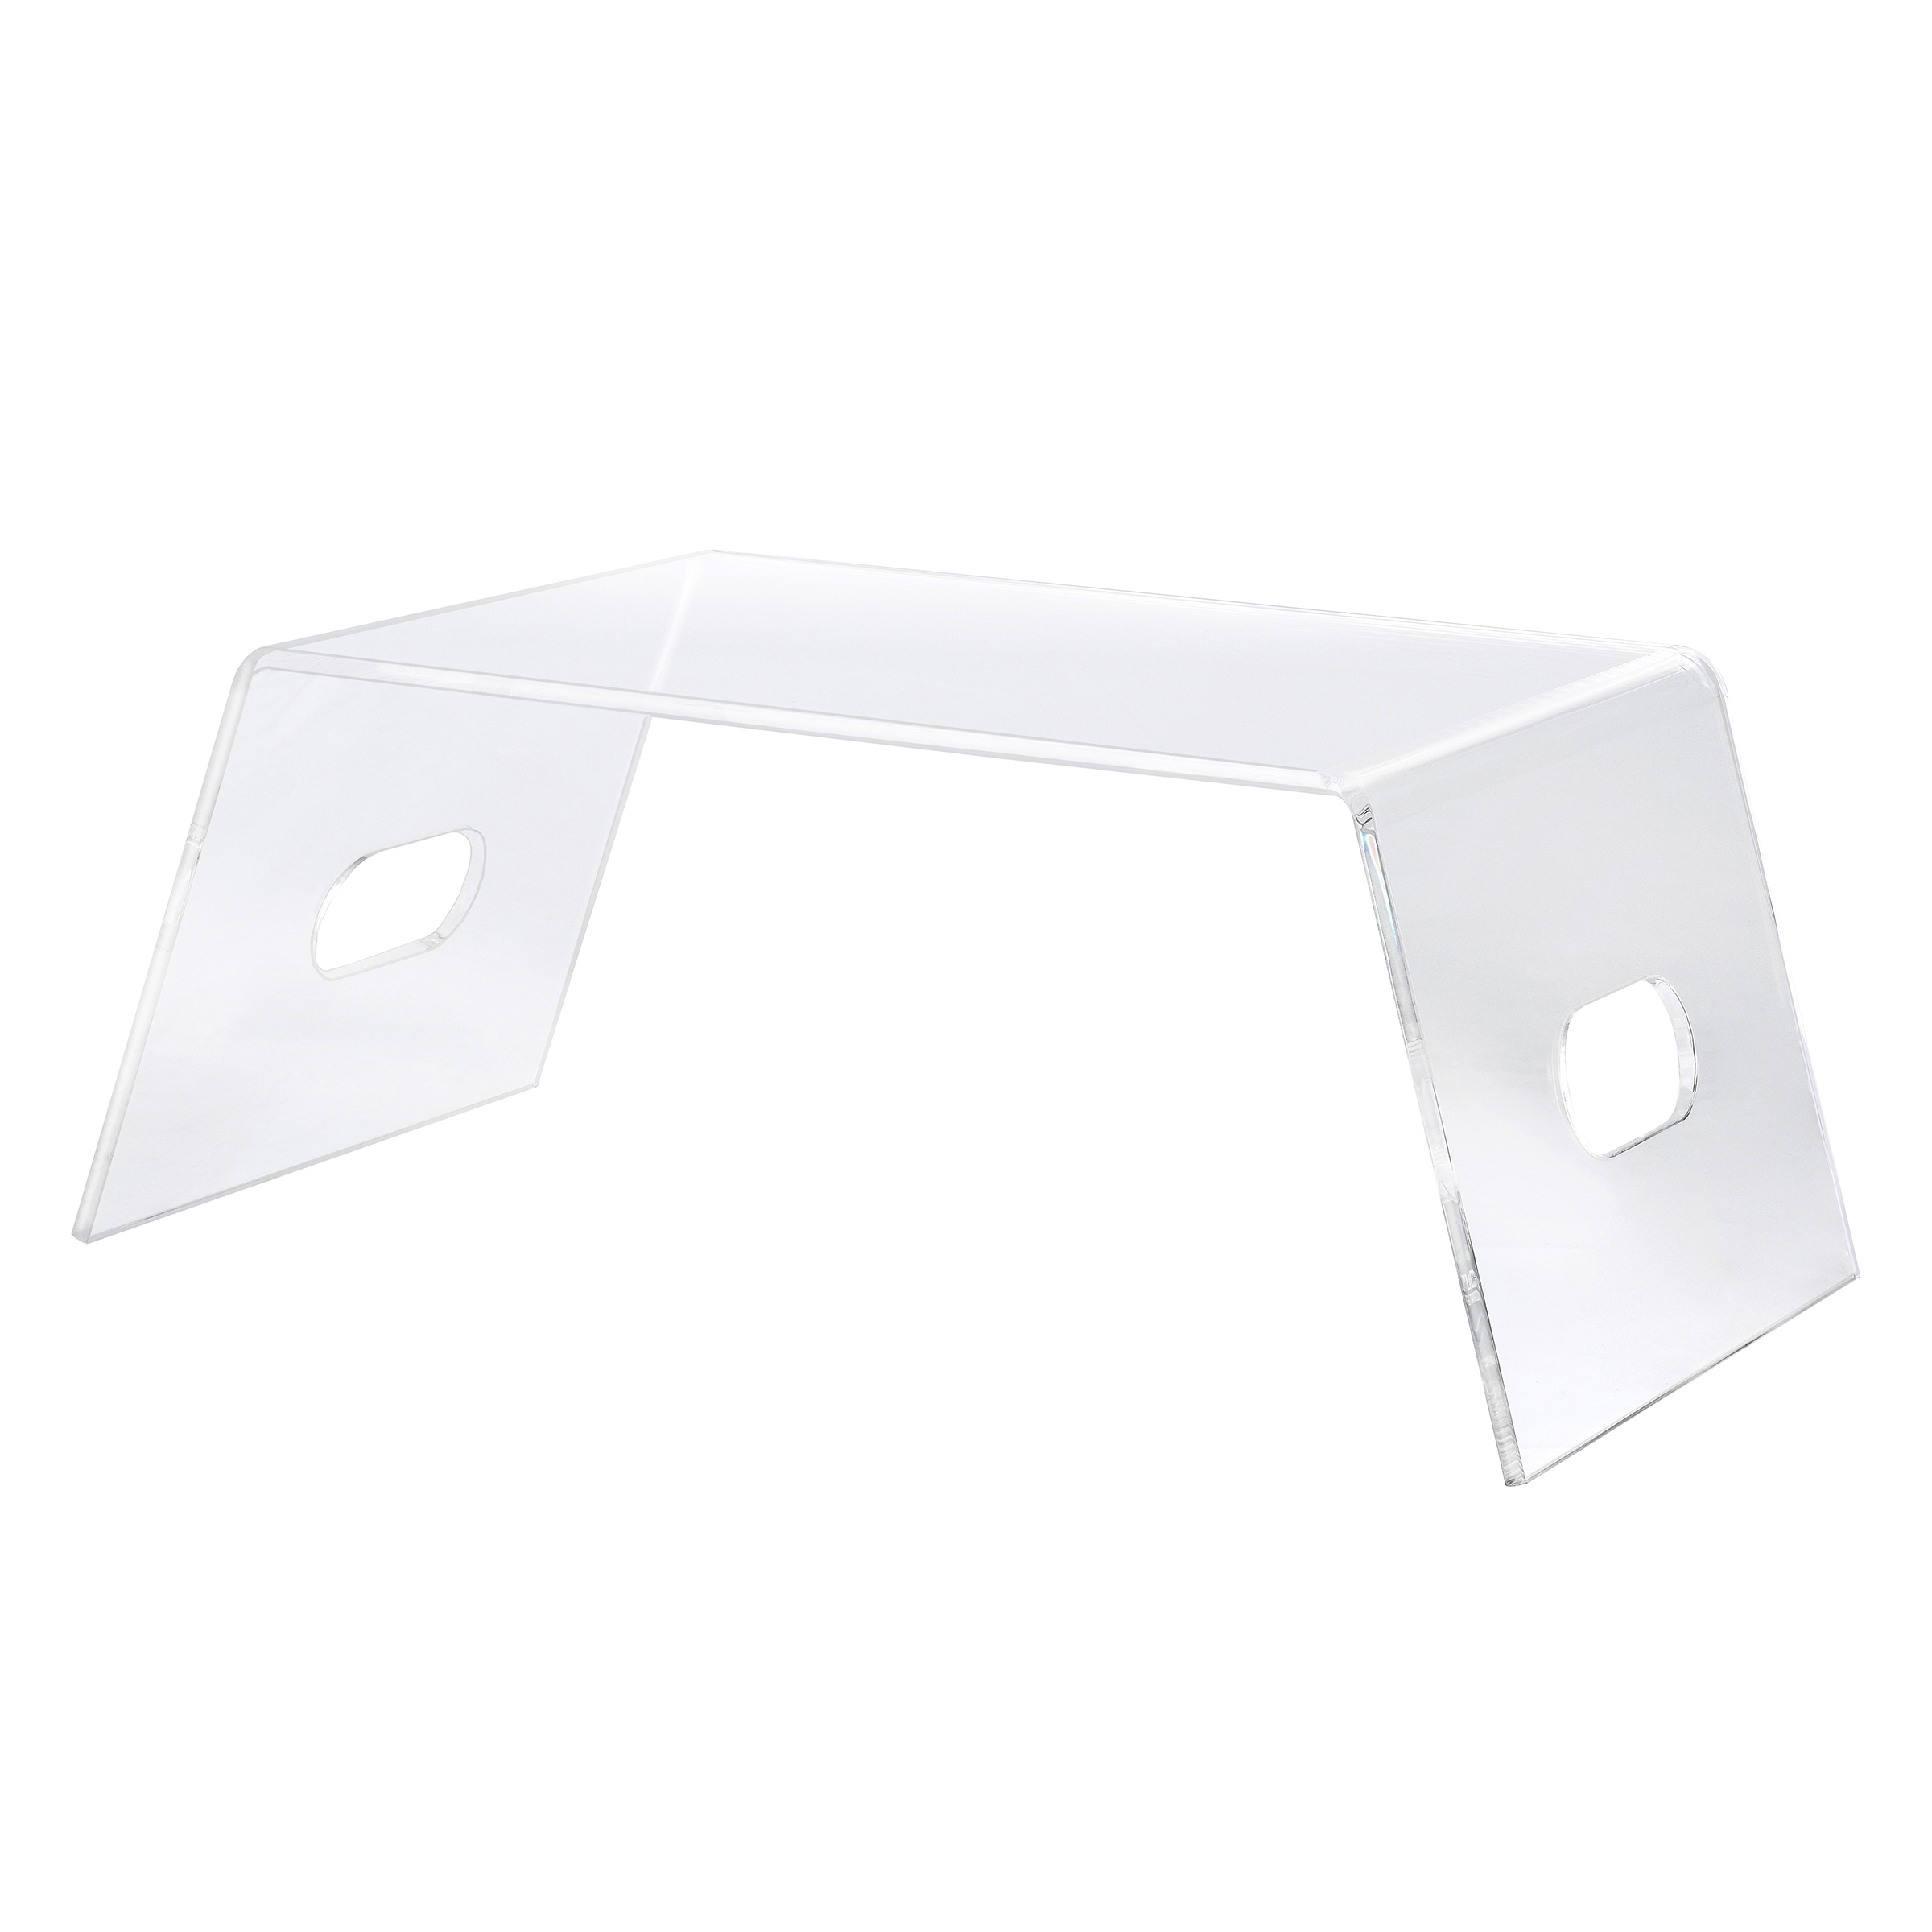 CLEAR ACRYLIC LAPTOP AND MONITOR STAND